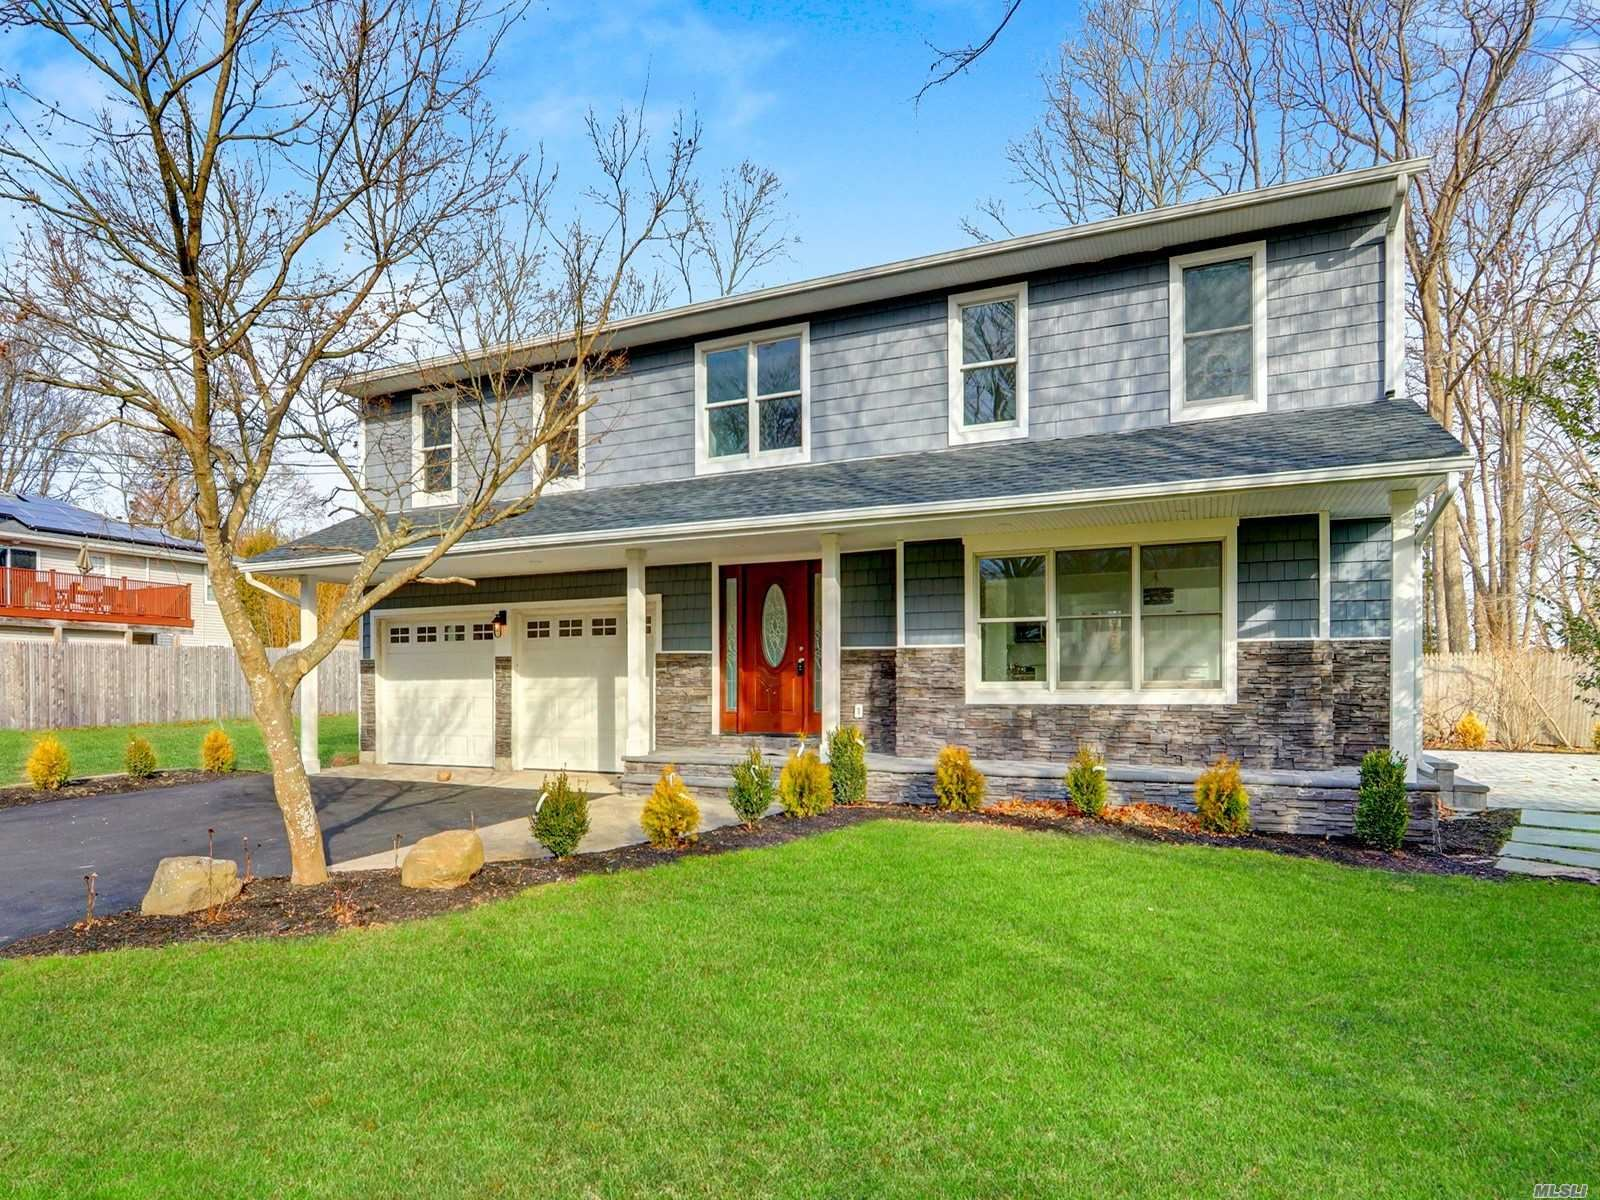 15 Elizabeth Place, Center Moriches, NY 11934 - MLS#: 3203683